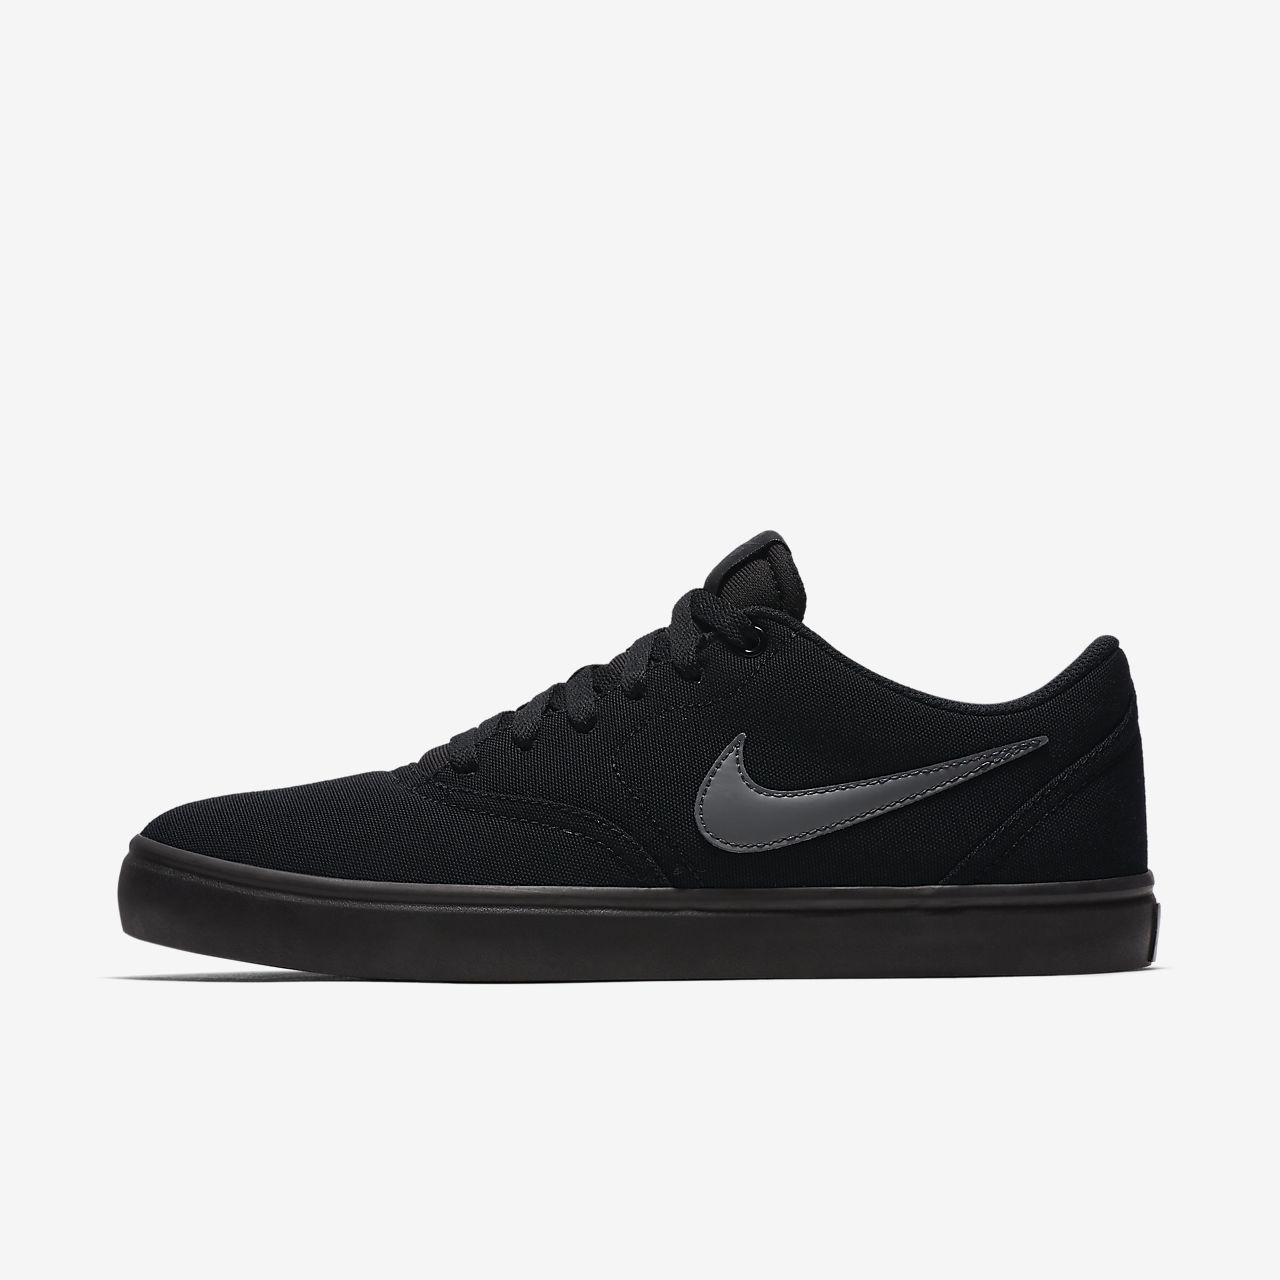 info for 3796f 96536 ... Calzado de skateboarding para hombre Nike SB Check Solarsoft Canvas